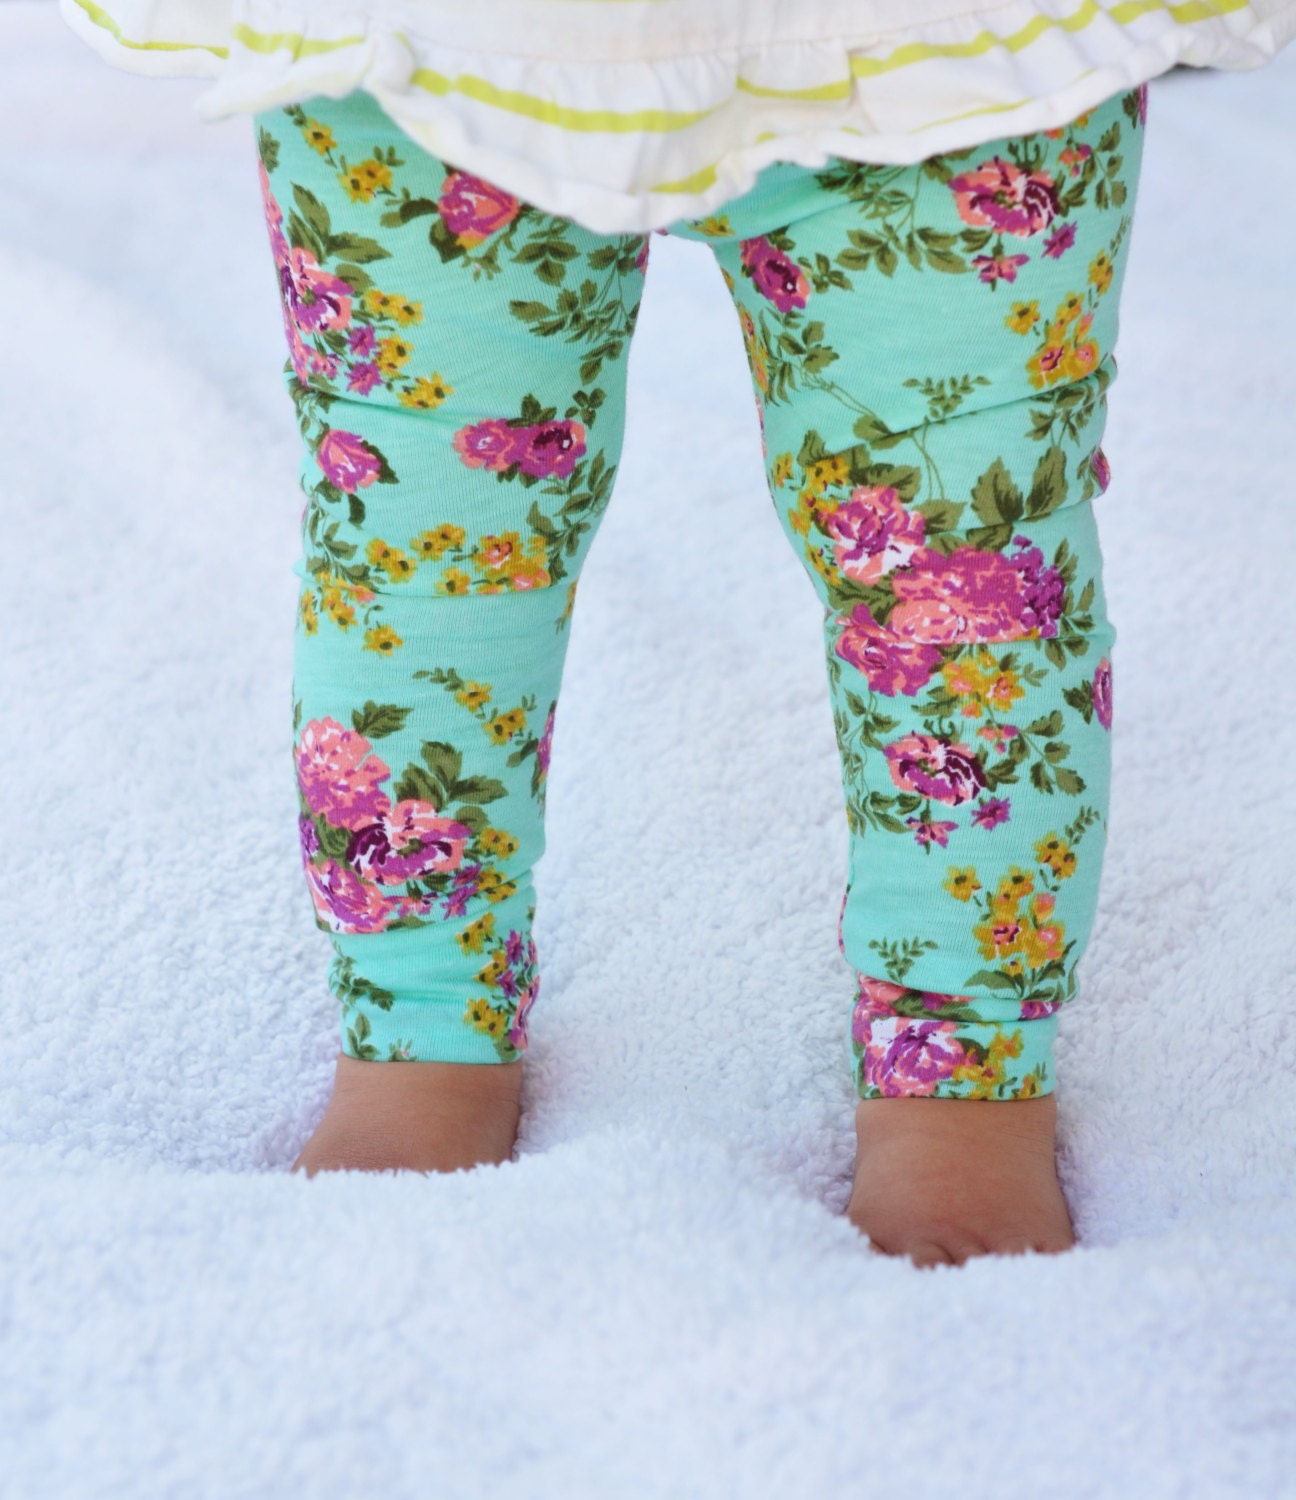 Shop baby girl leggings at specialtysports.ga Shop Oshkosh B'gosh, the most trusted name in kids and baby clothes, plus our world famous overalls. Shop baby girl leggings at specialtysports.ga Shop Oshkosh B'gosh, the most trusted name in kids and baby clothes, plus our world famous overalls.